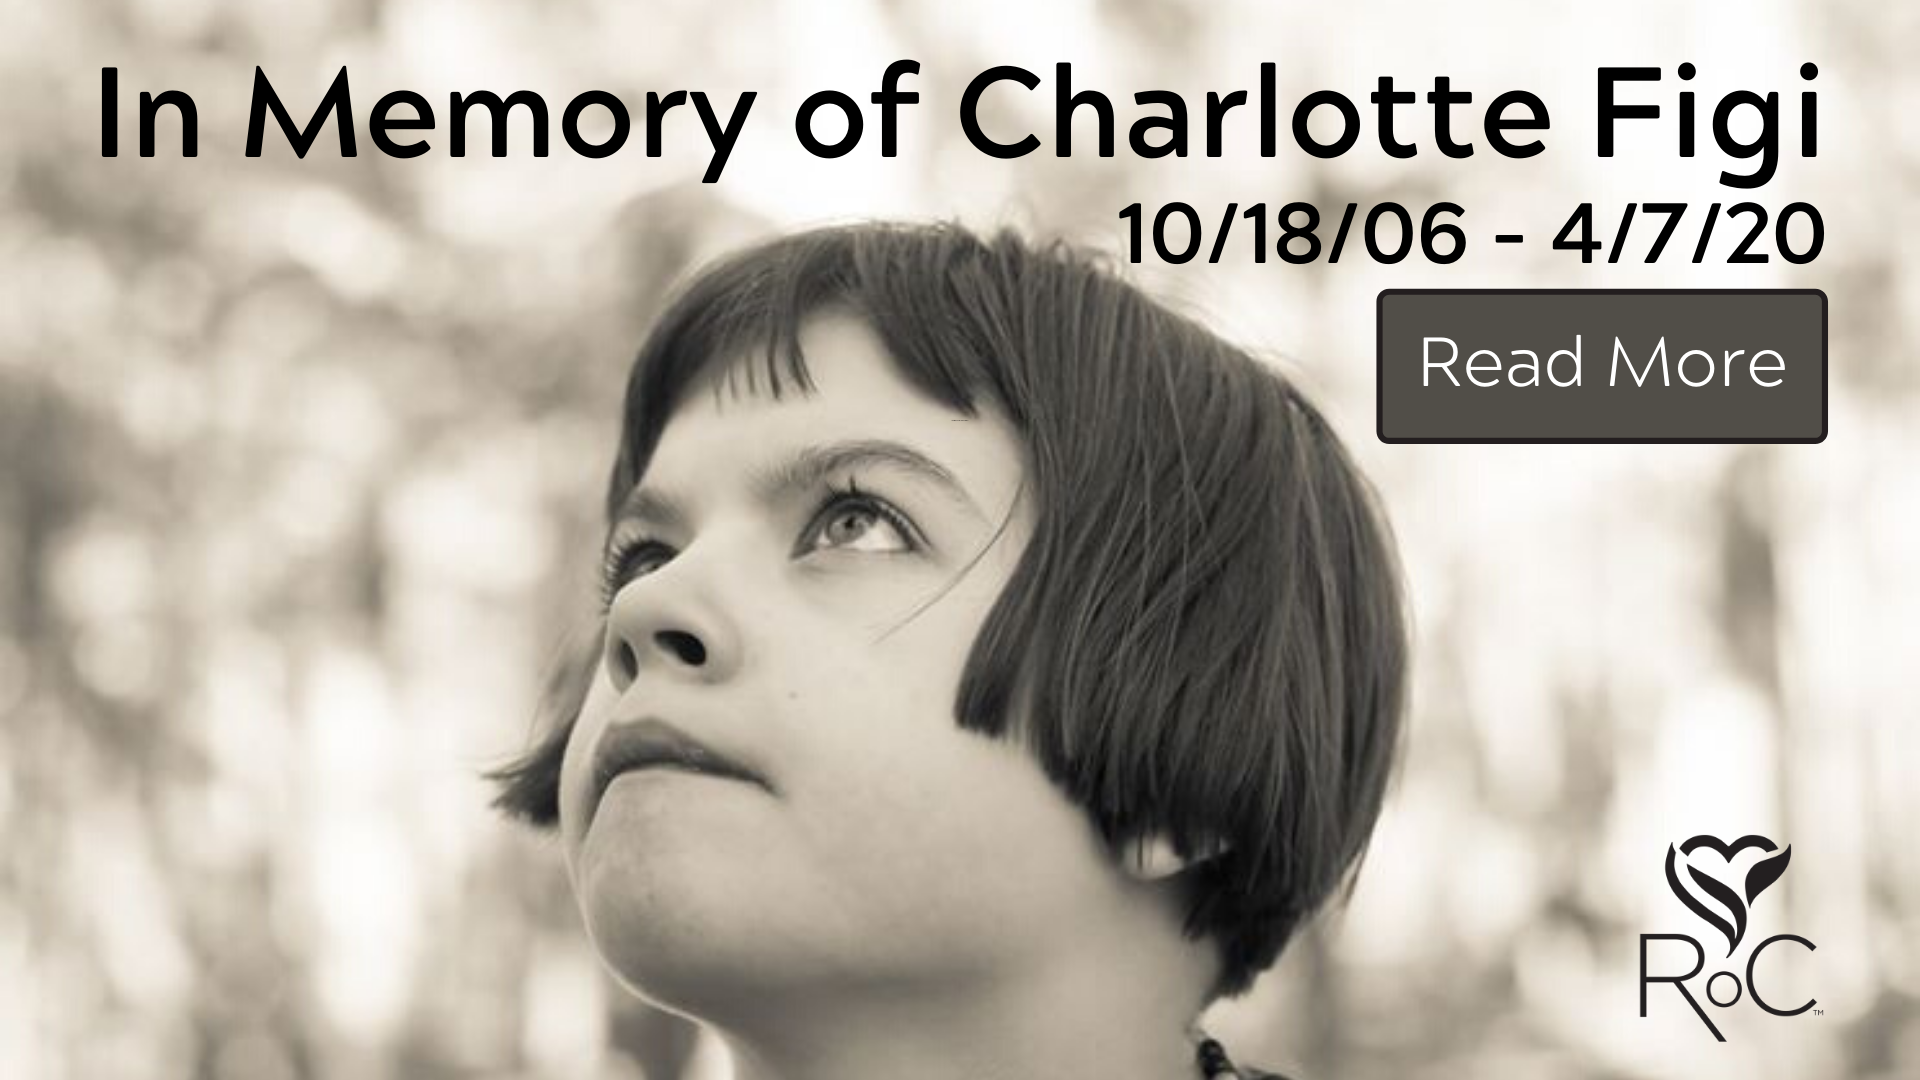 Copy of In Memory of Charlotte Figi 10-18-06-4-7-20